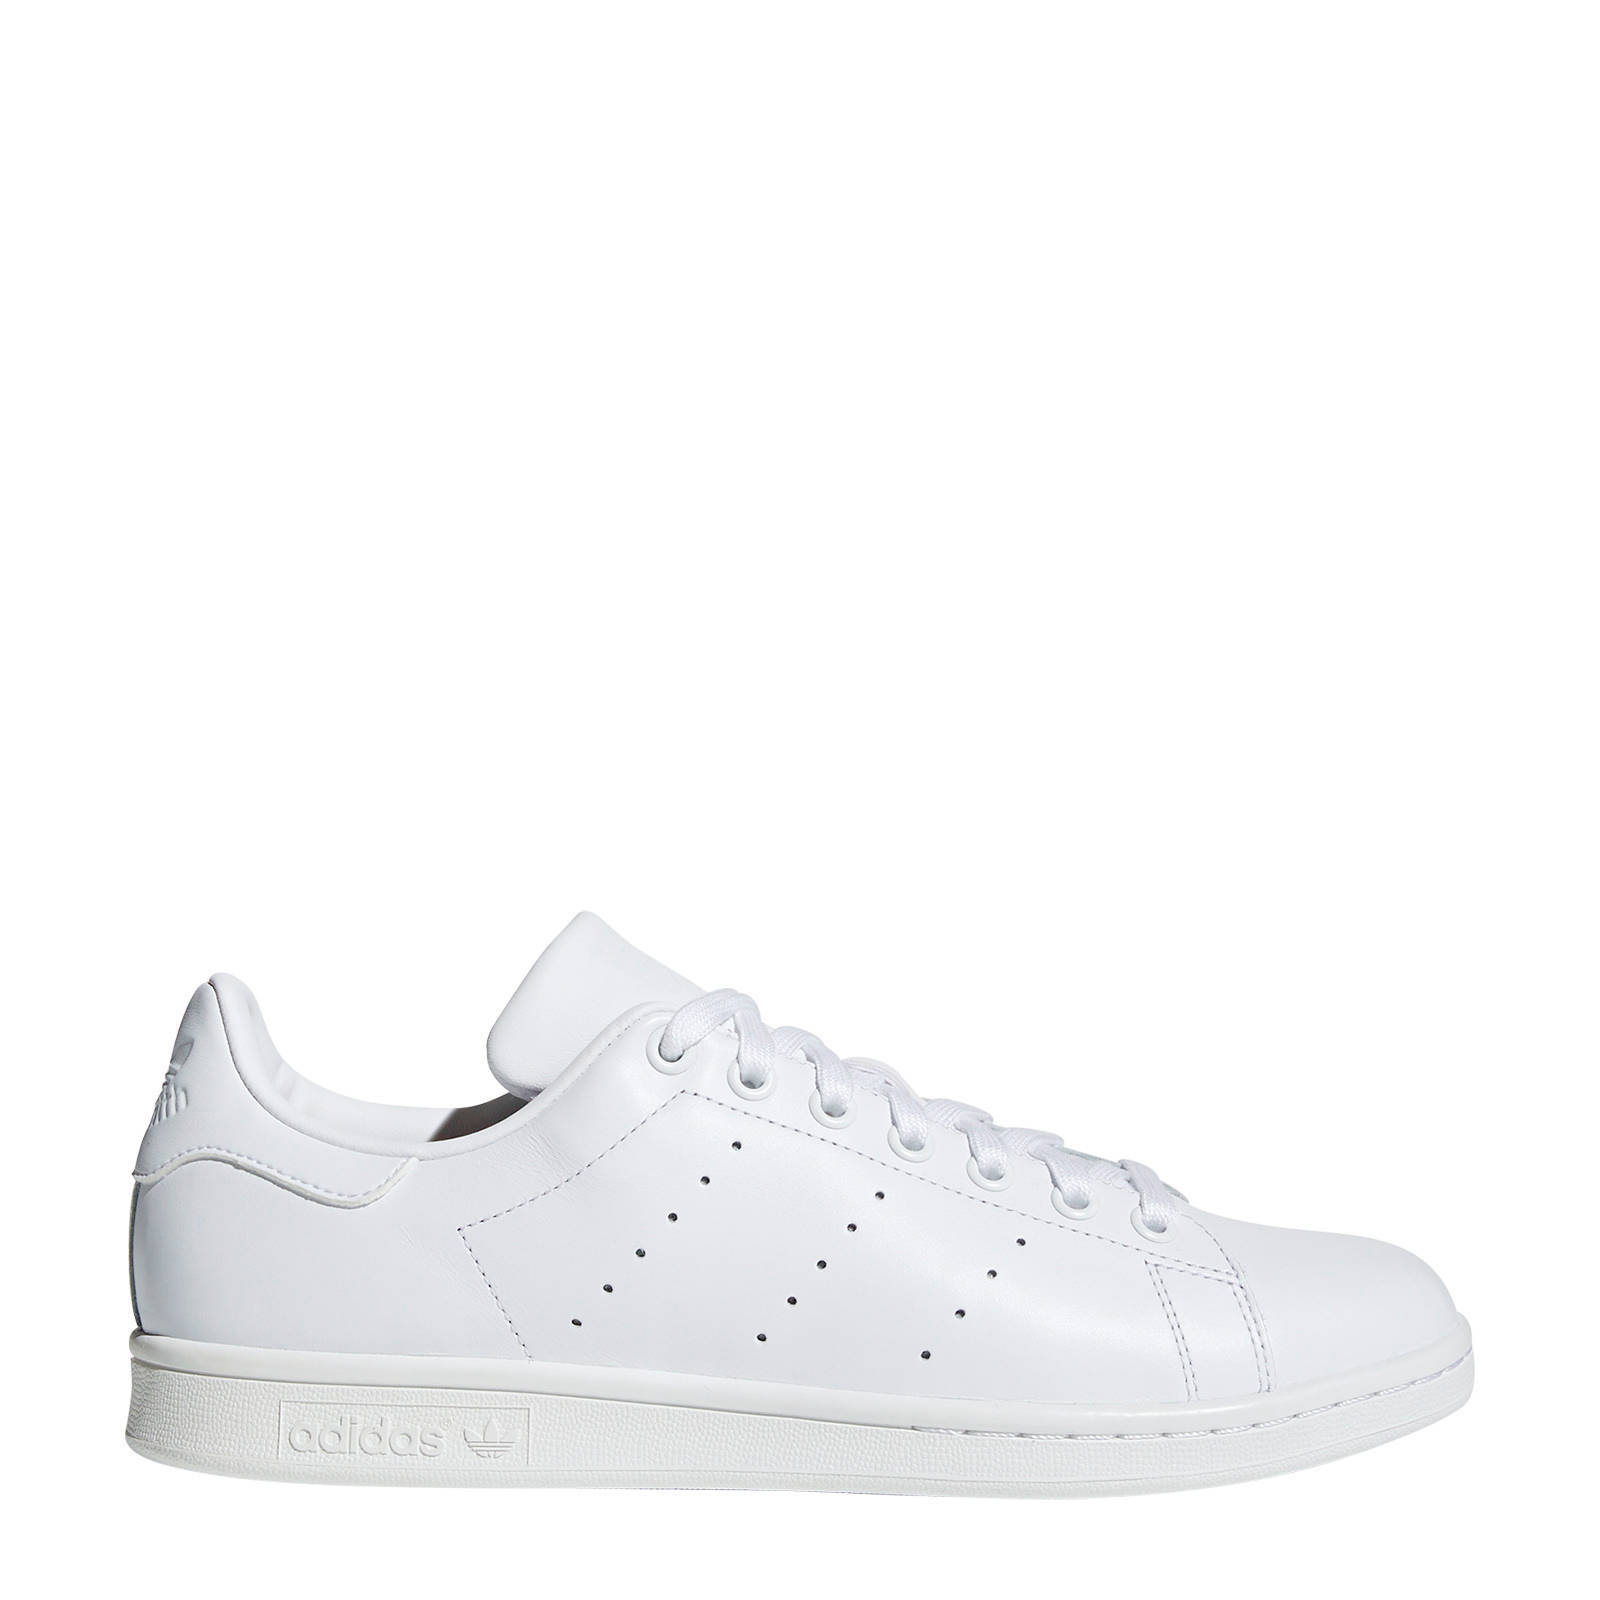 Stan Smith leren sneakers